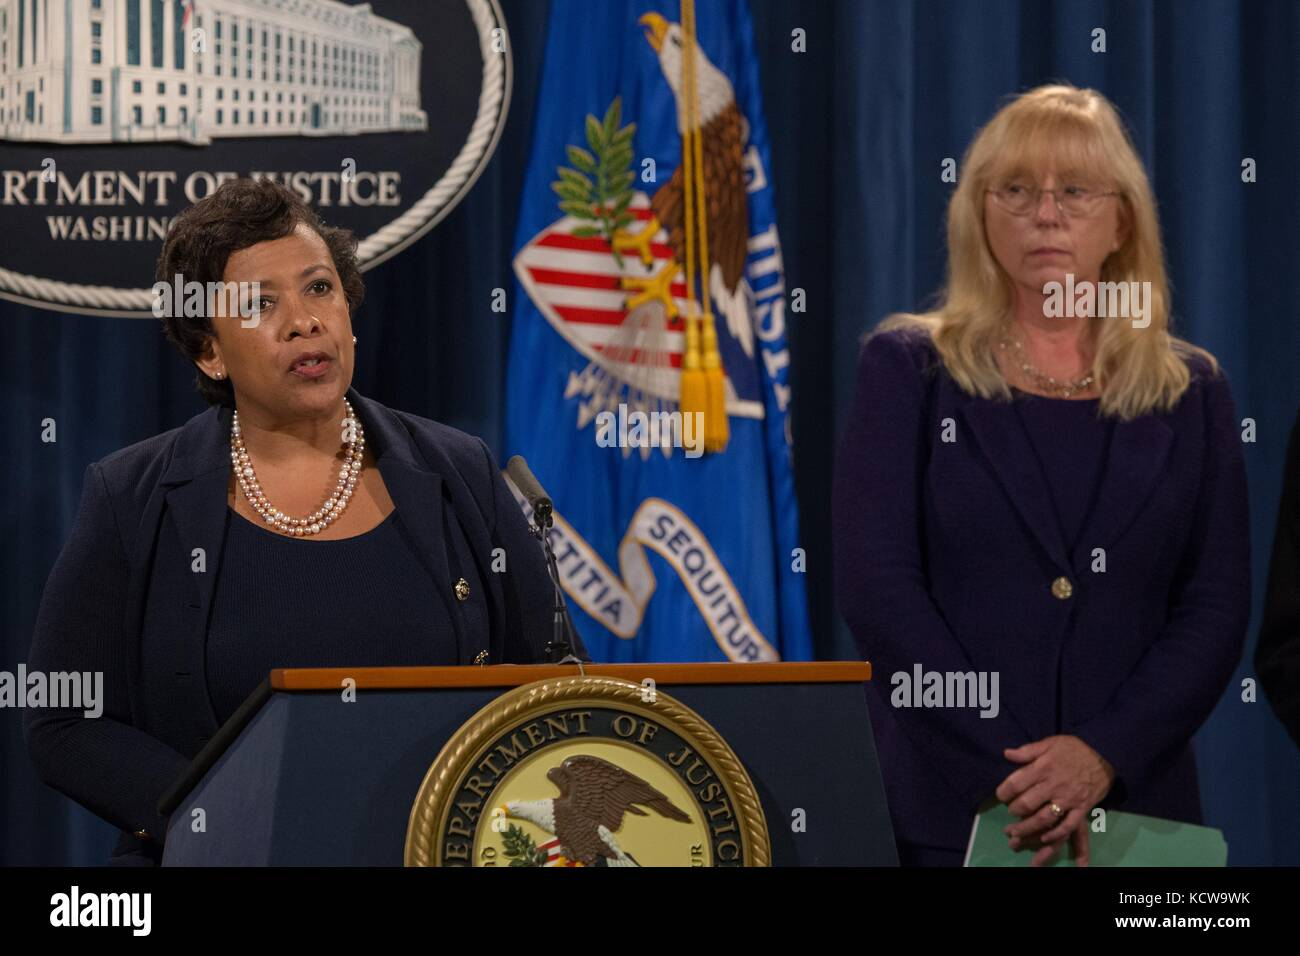 U.S Attorney General Loretta Lynch announces civil forfeiture complaints seeking to recover more than $1 billion - Stock Image